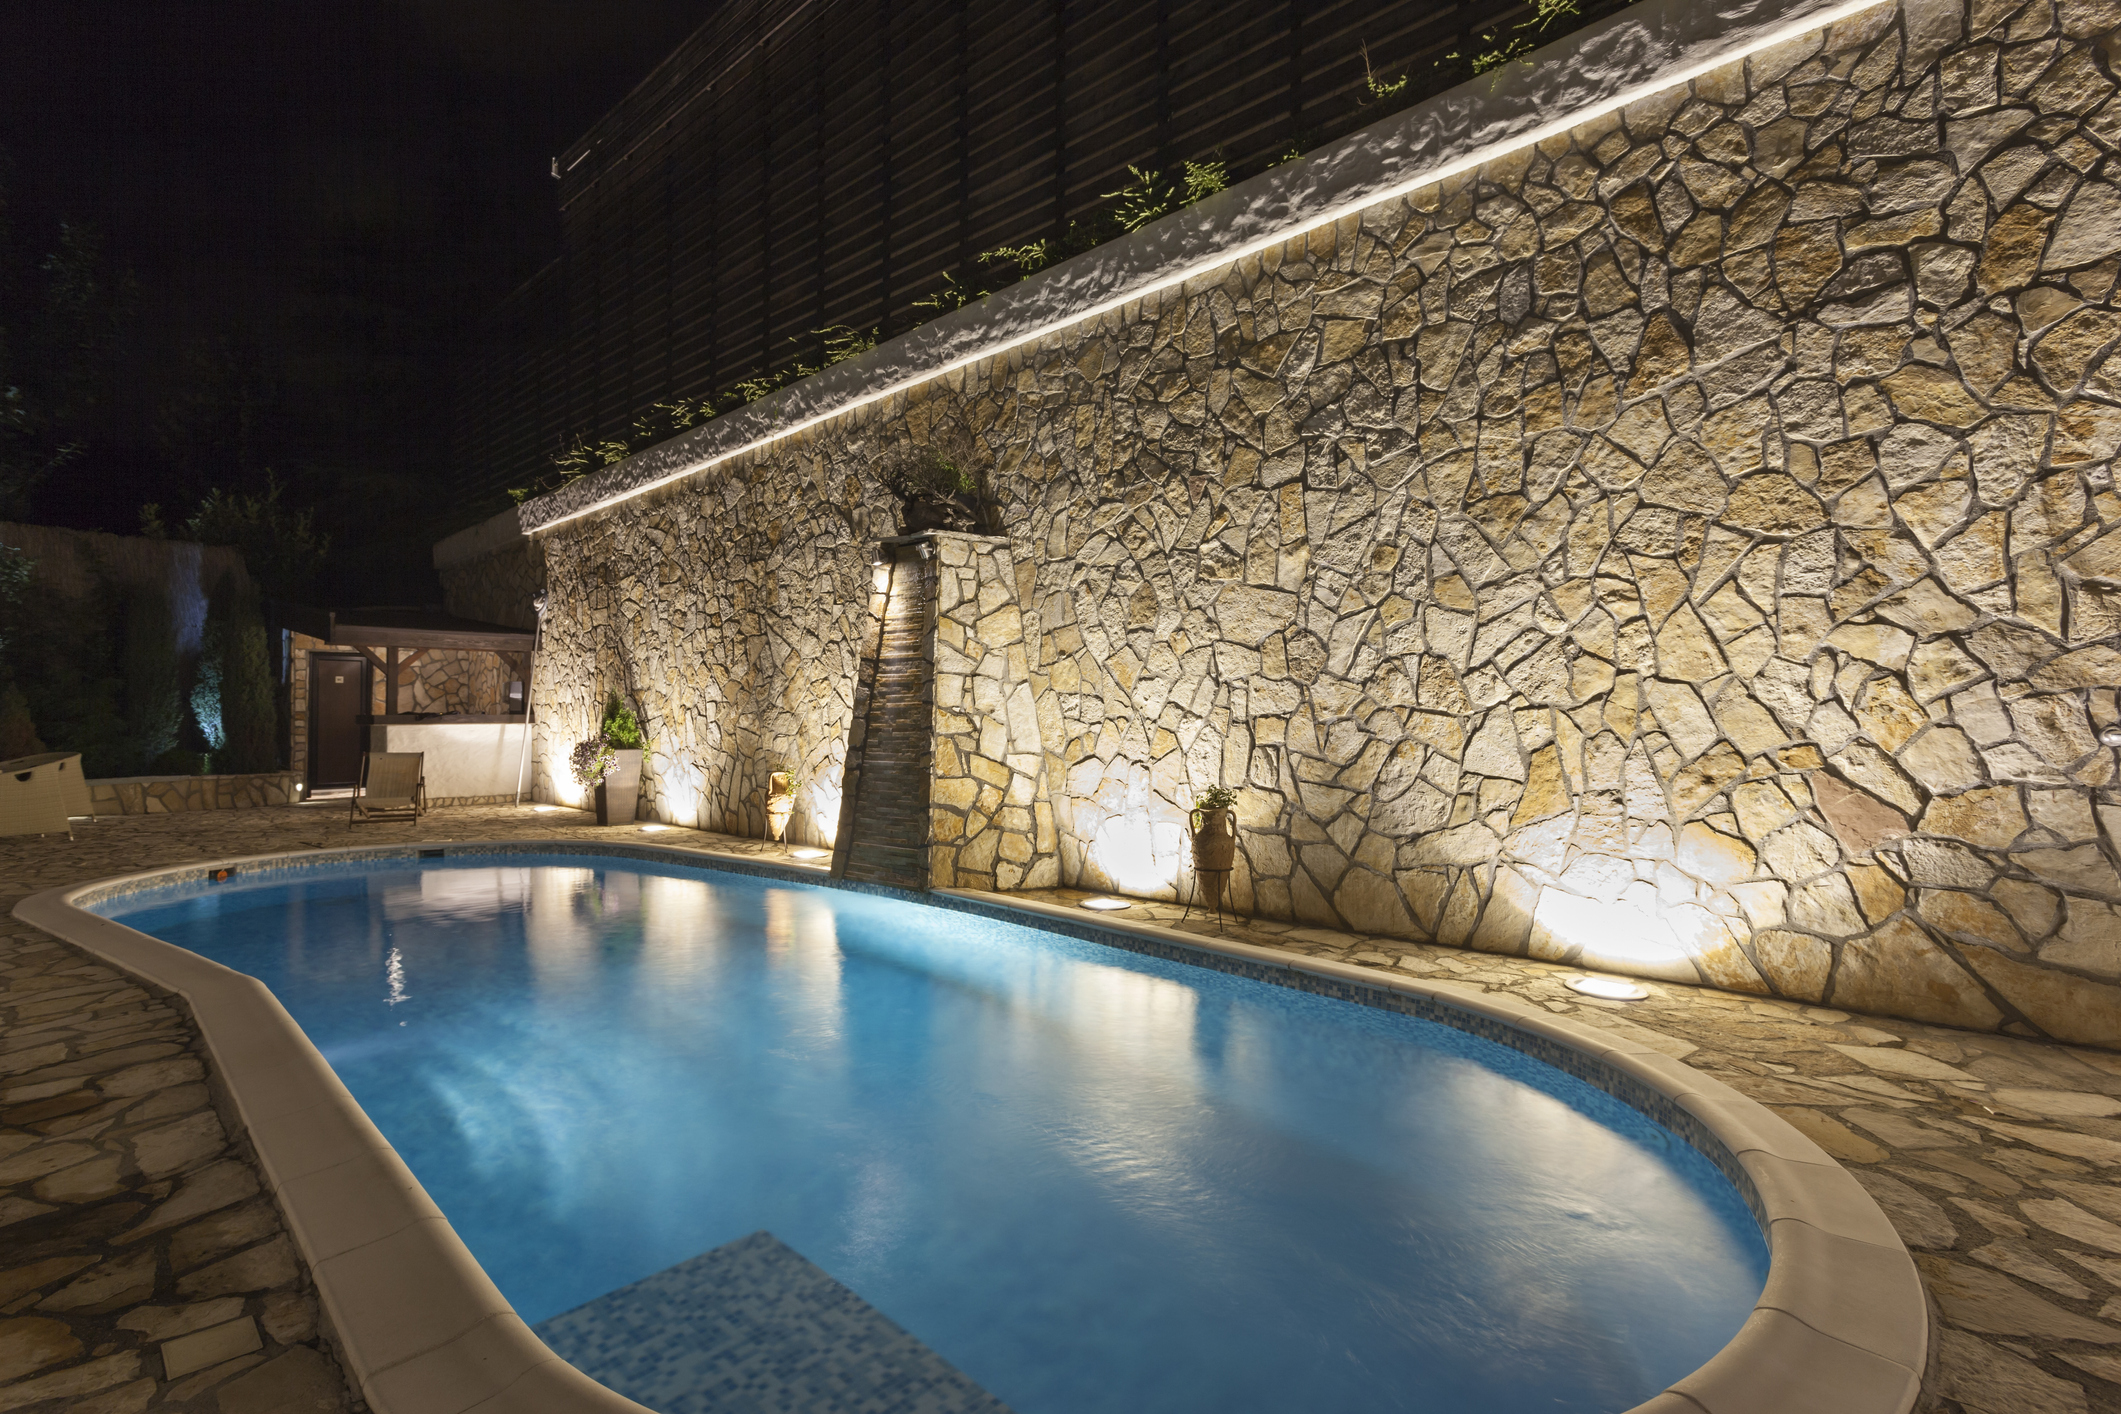 LED the way: Light your Nighttime WaterSpace with New Outdoor LEDs